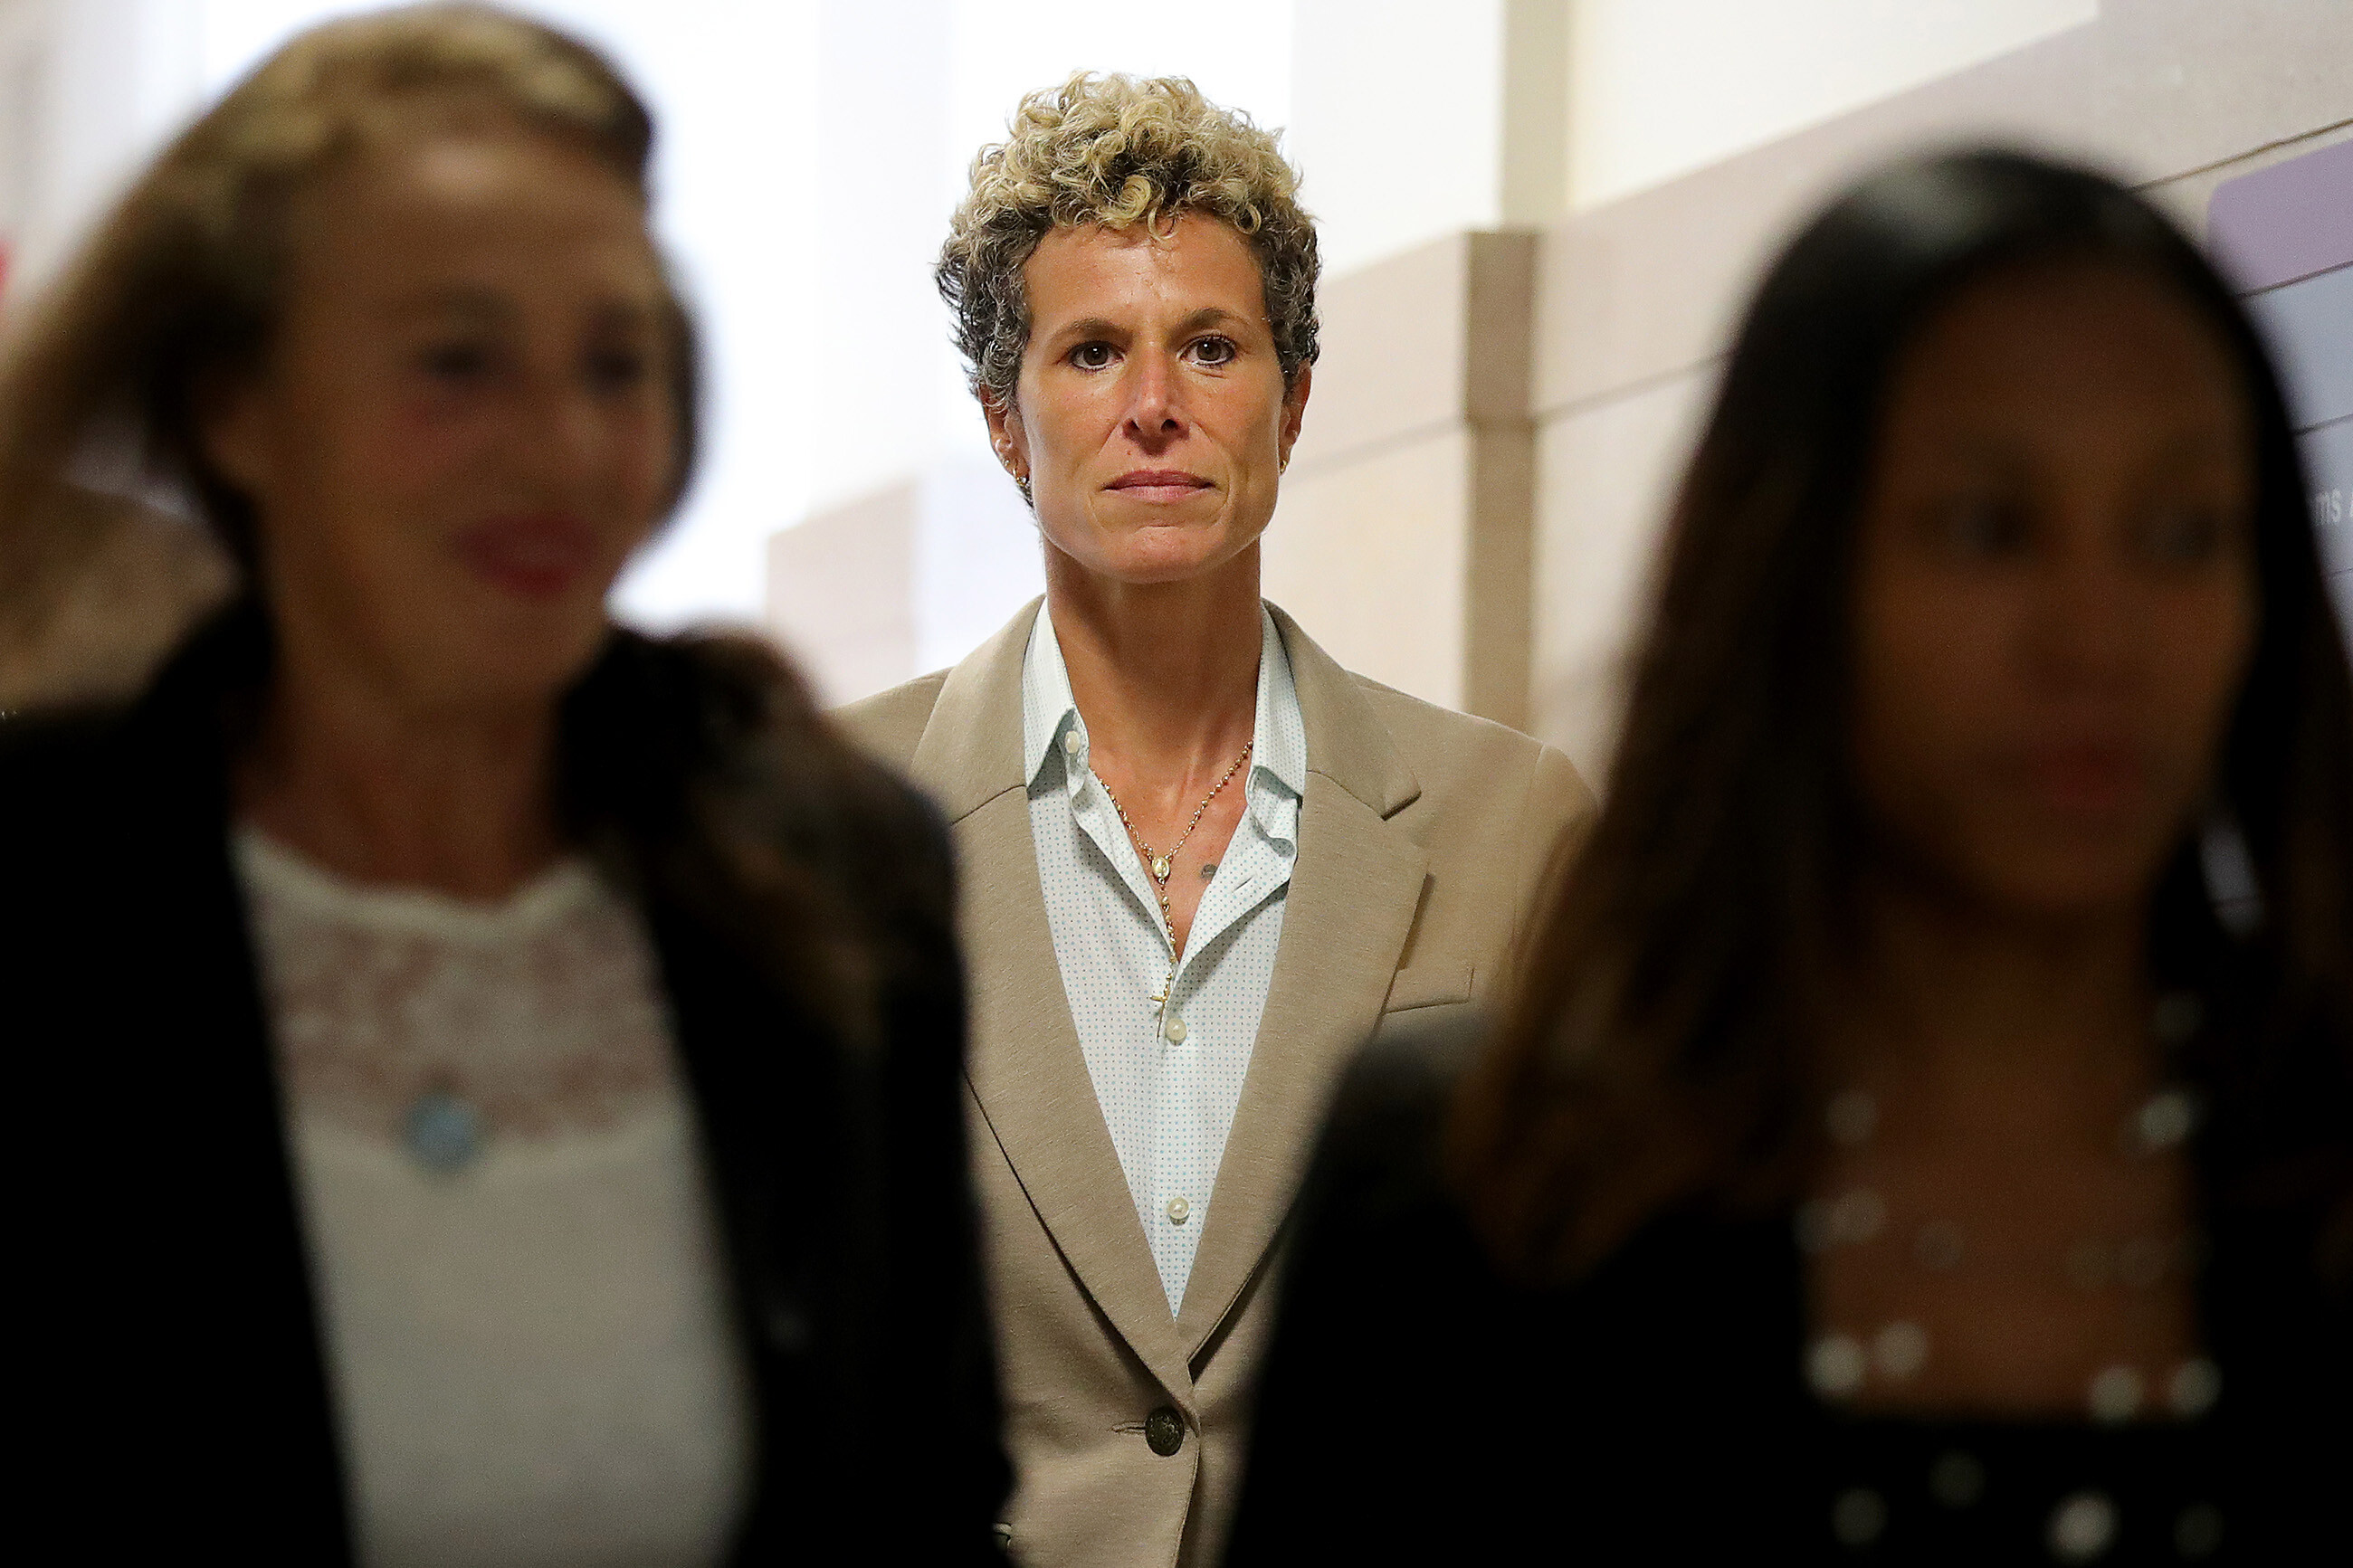 Cosby accuser after his release: 'It was worth it'